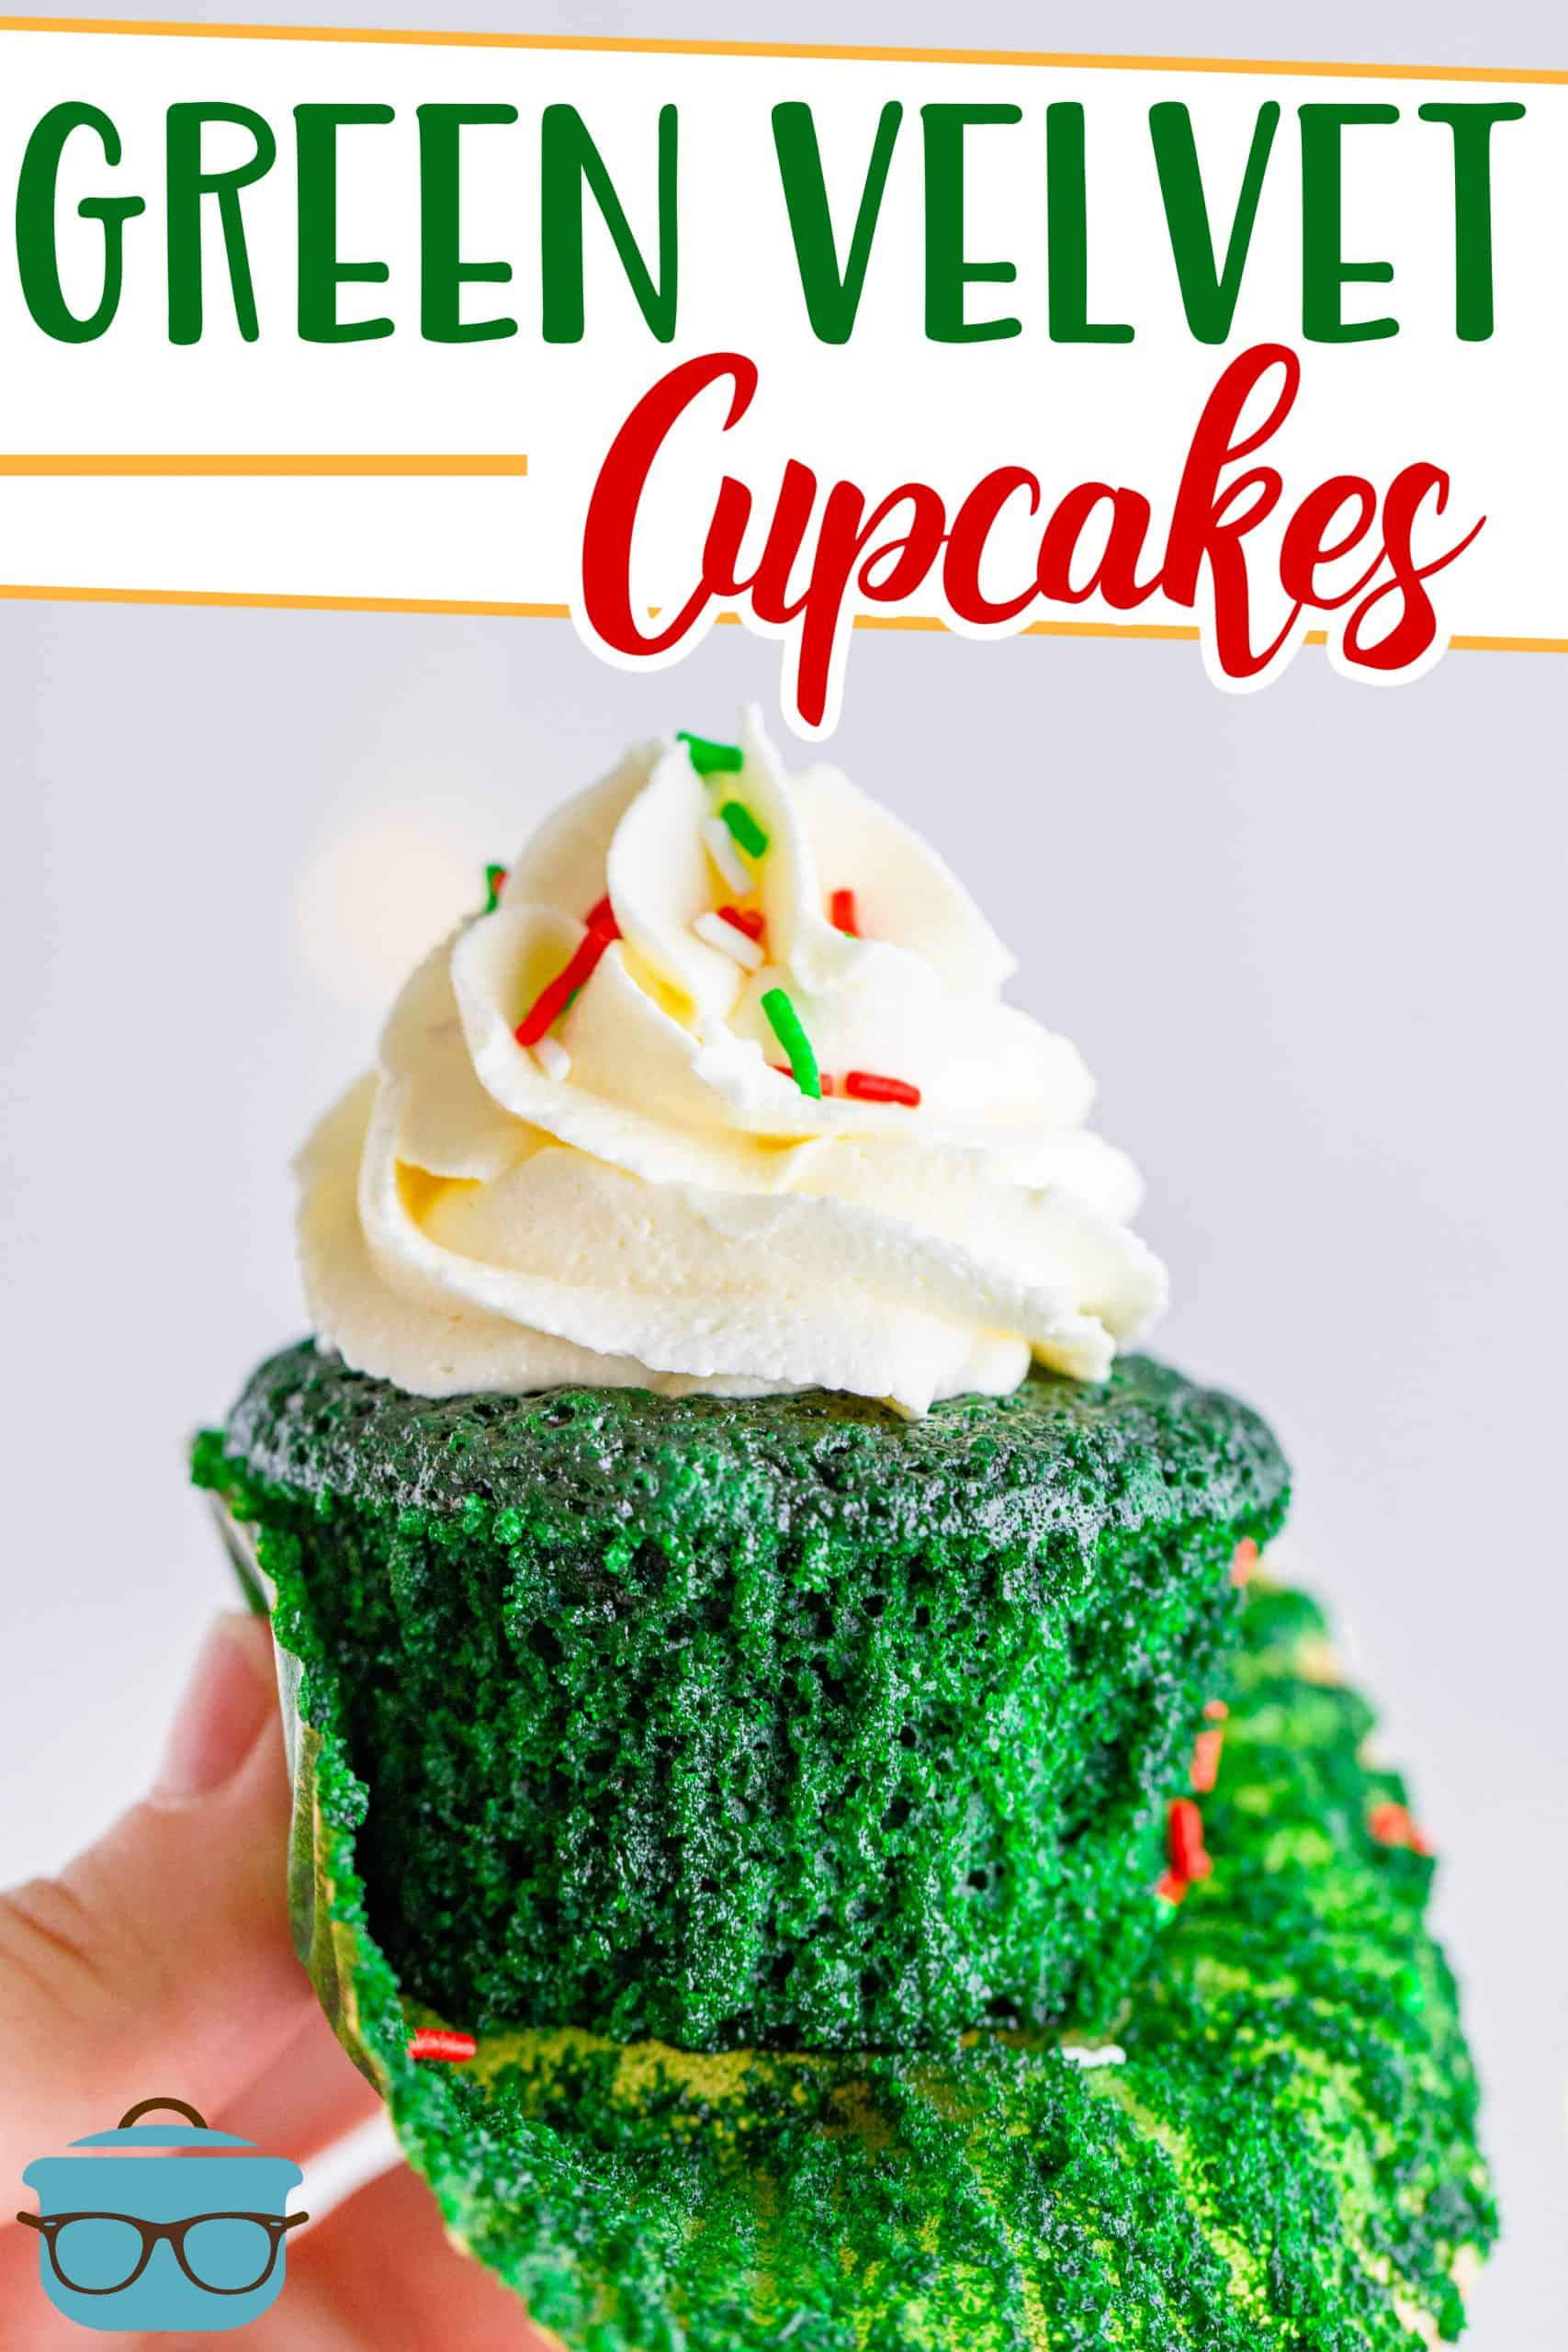 This recipe for Homemade Green Velvet Cupcakes tastes just like red velvet cake but is green instead of red. Incredibly moist and delicious!